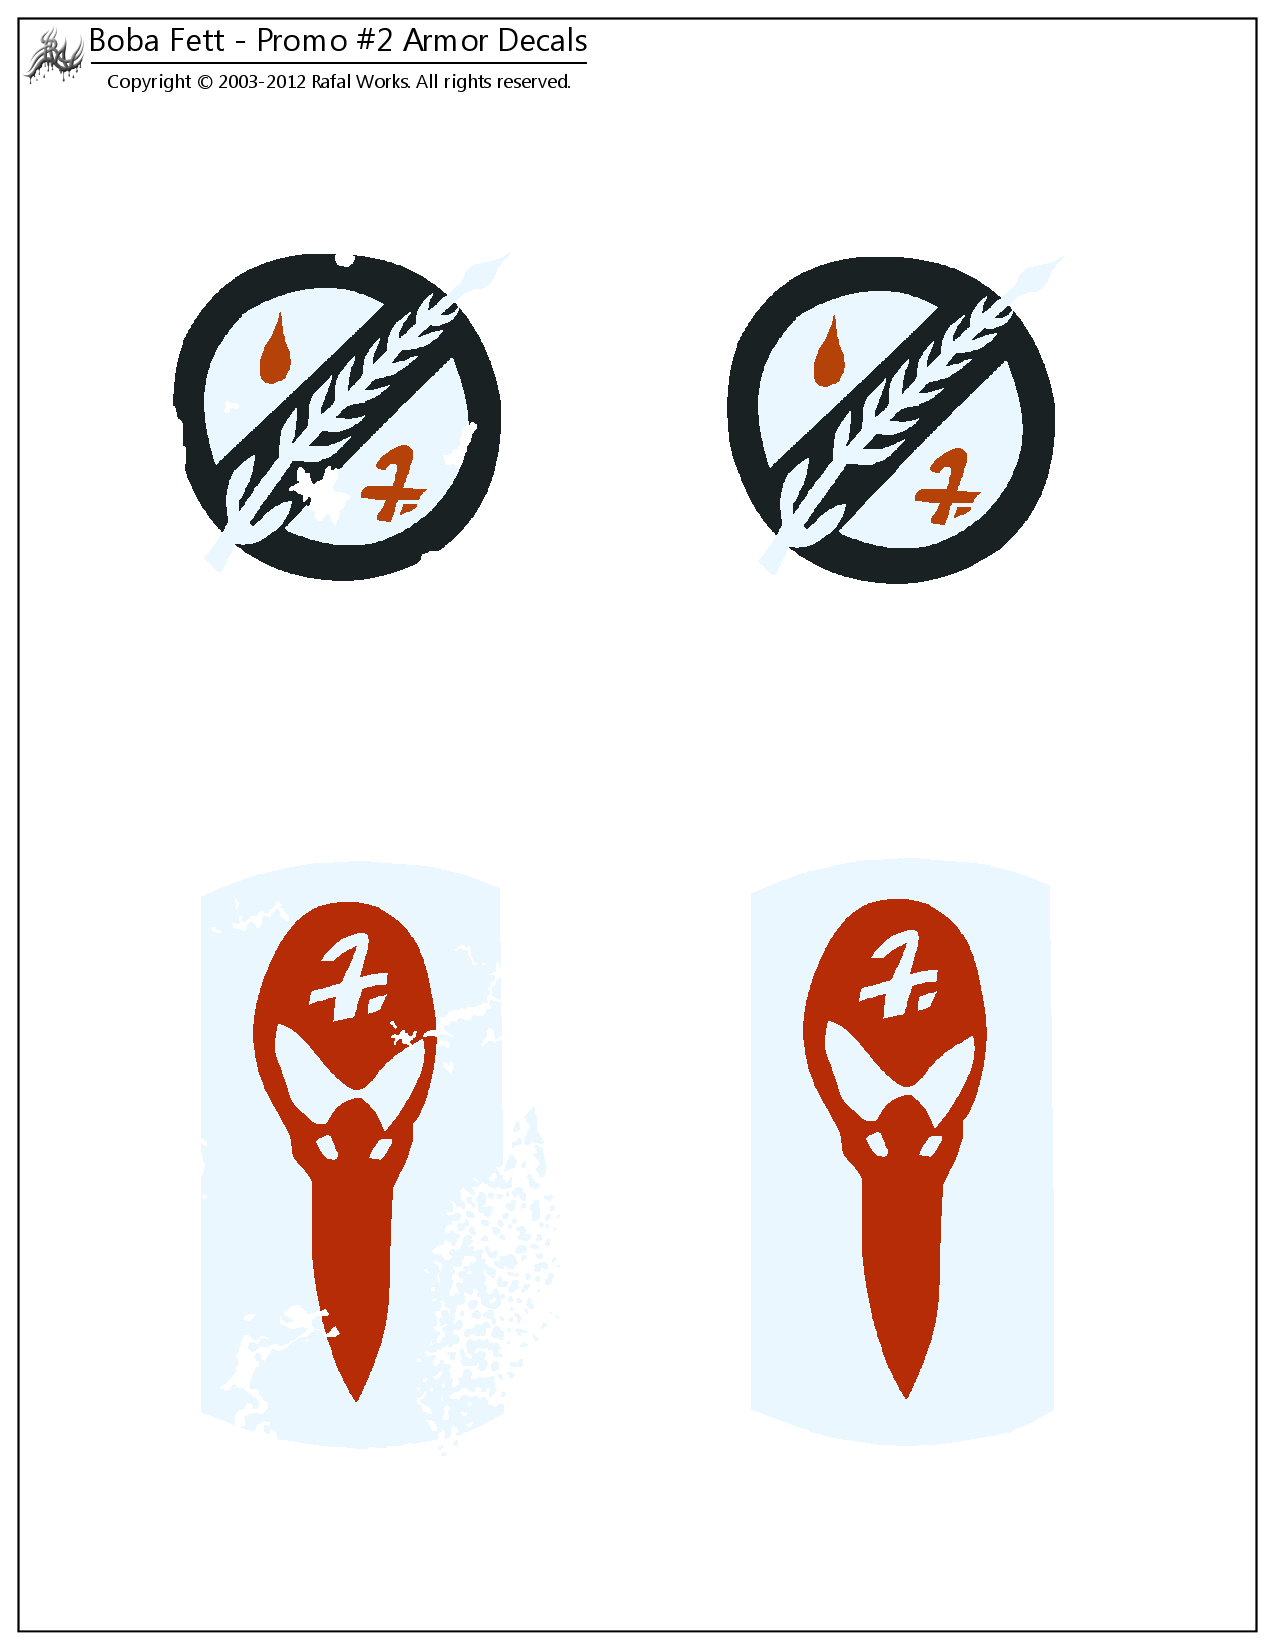 Promo2 Armor Decals LTR.png